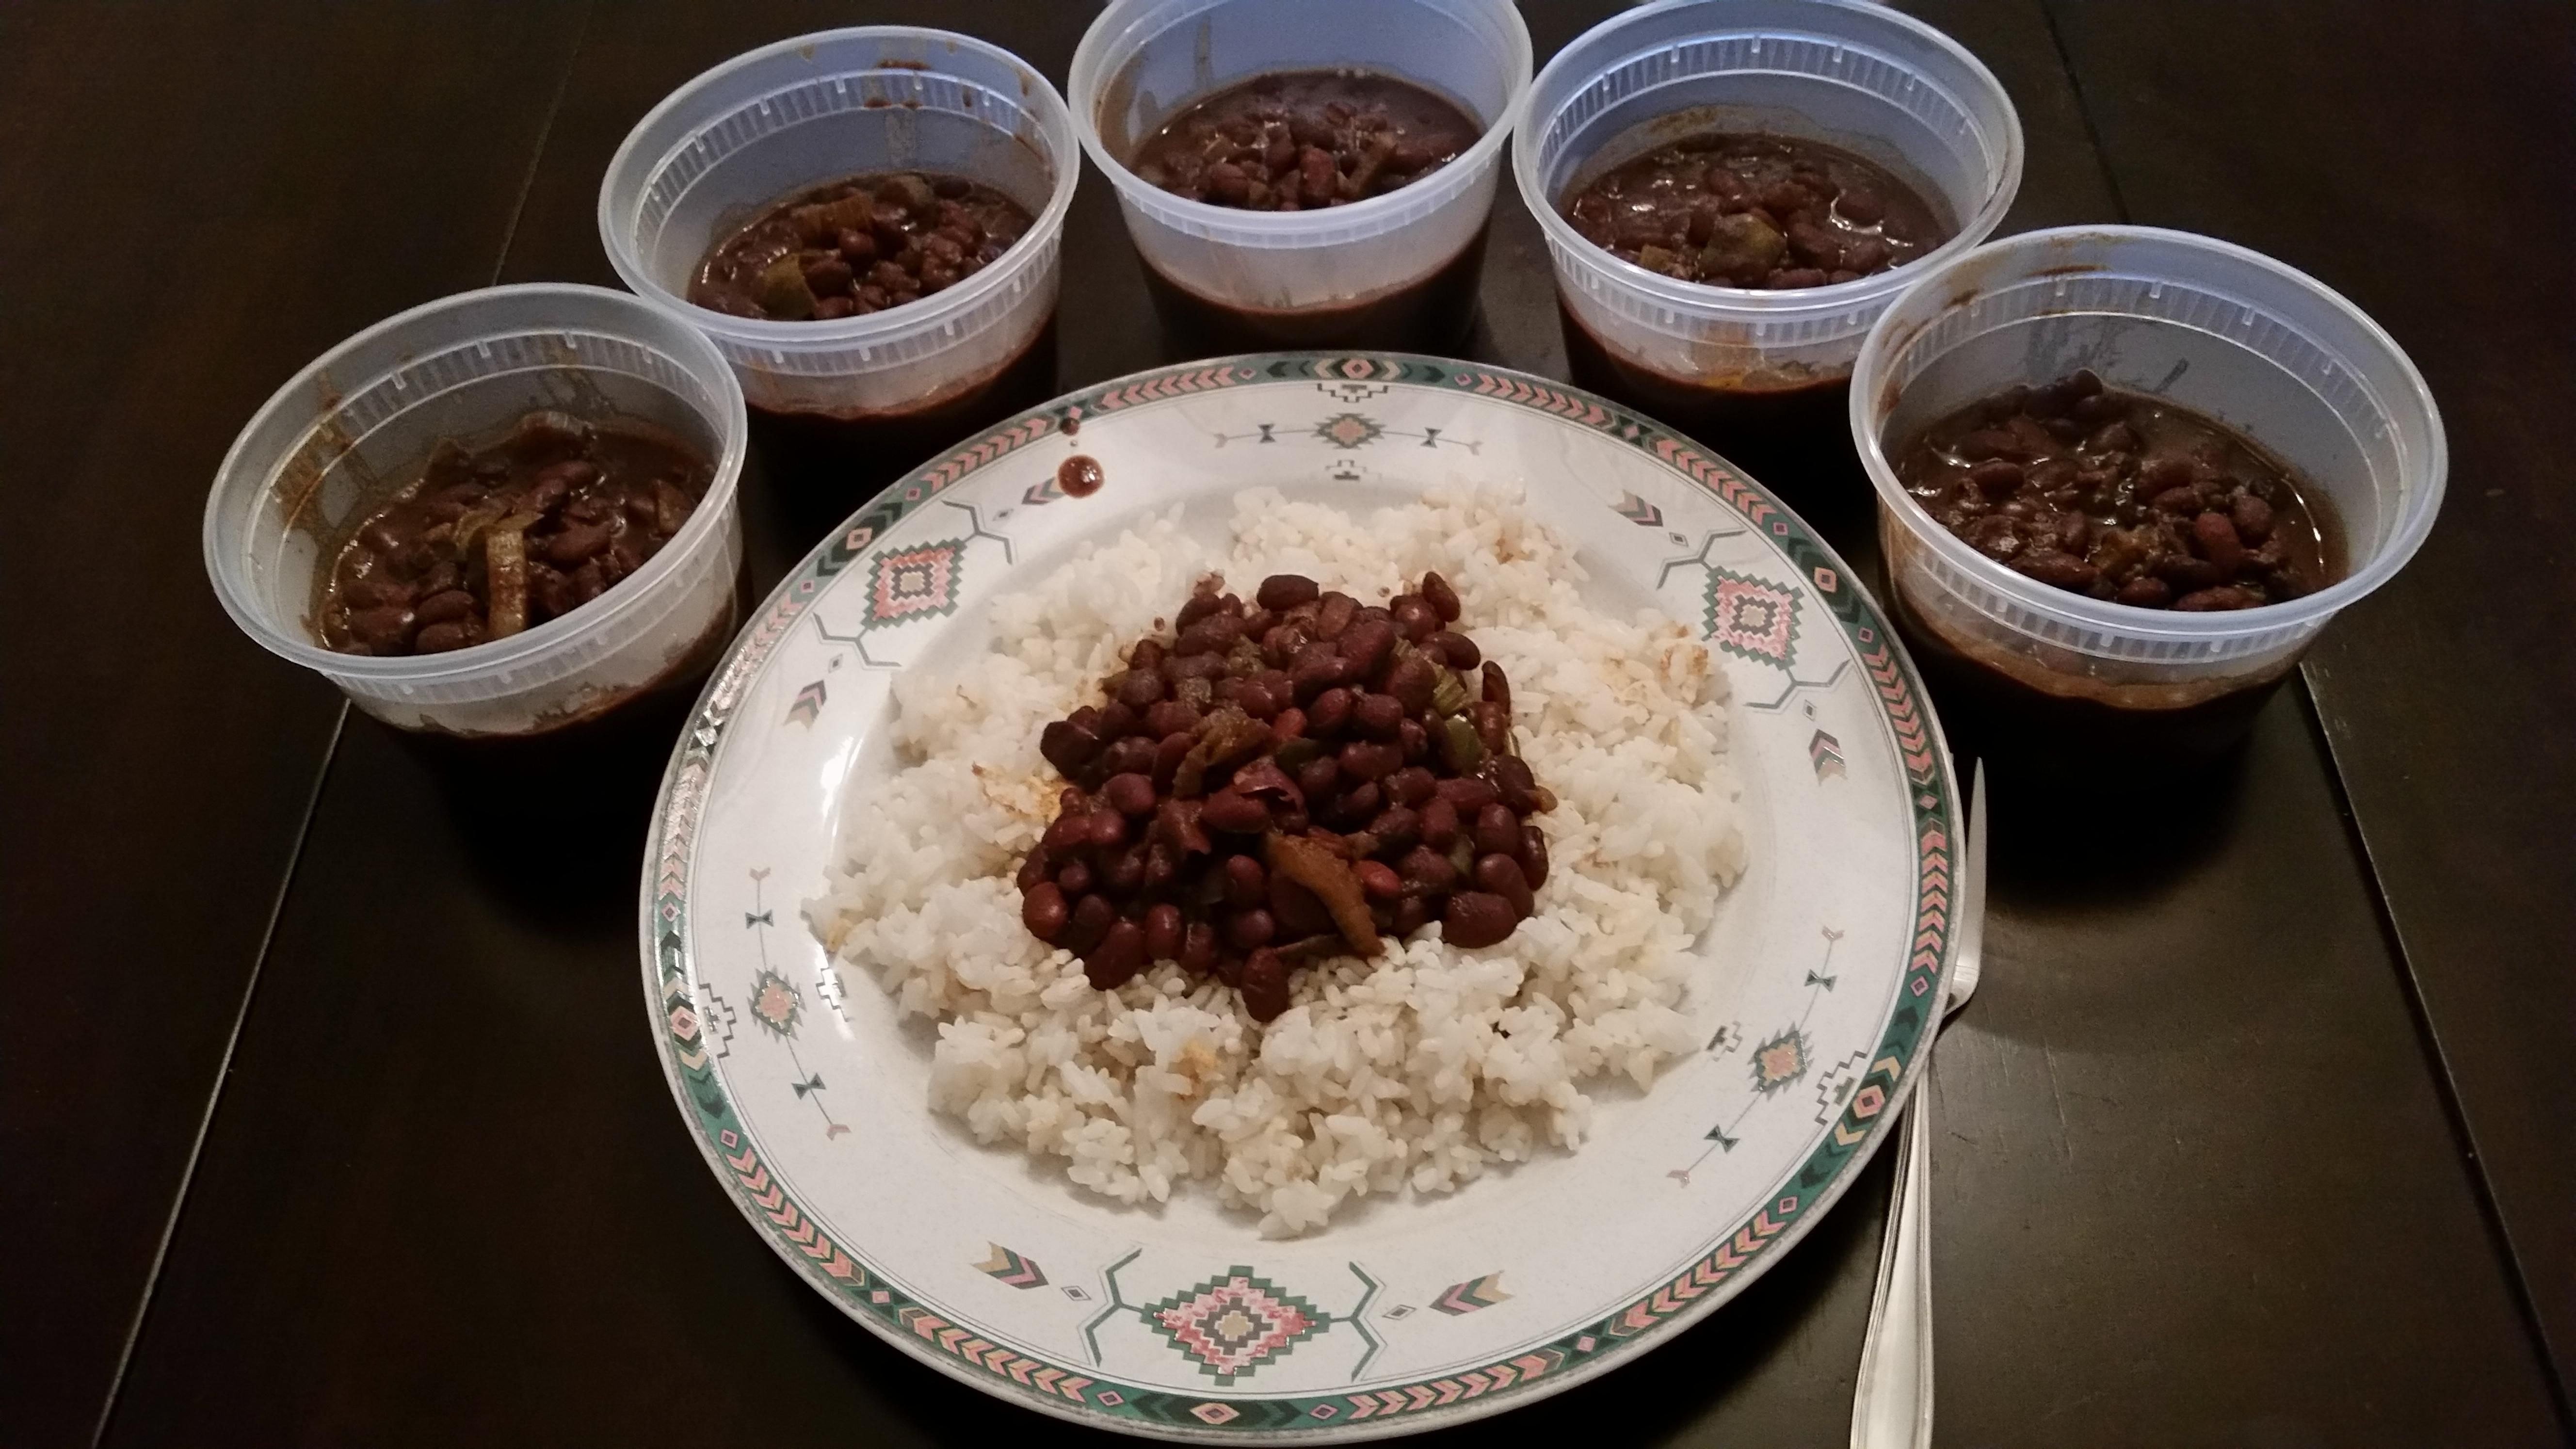 Creoleish black beans and rice 6 meals for 506